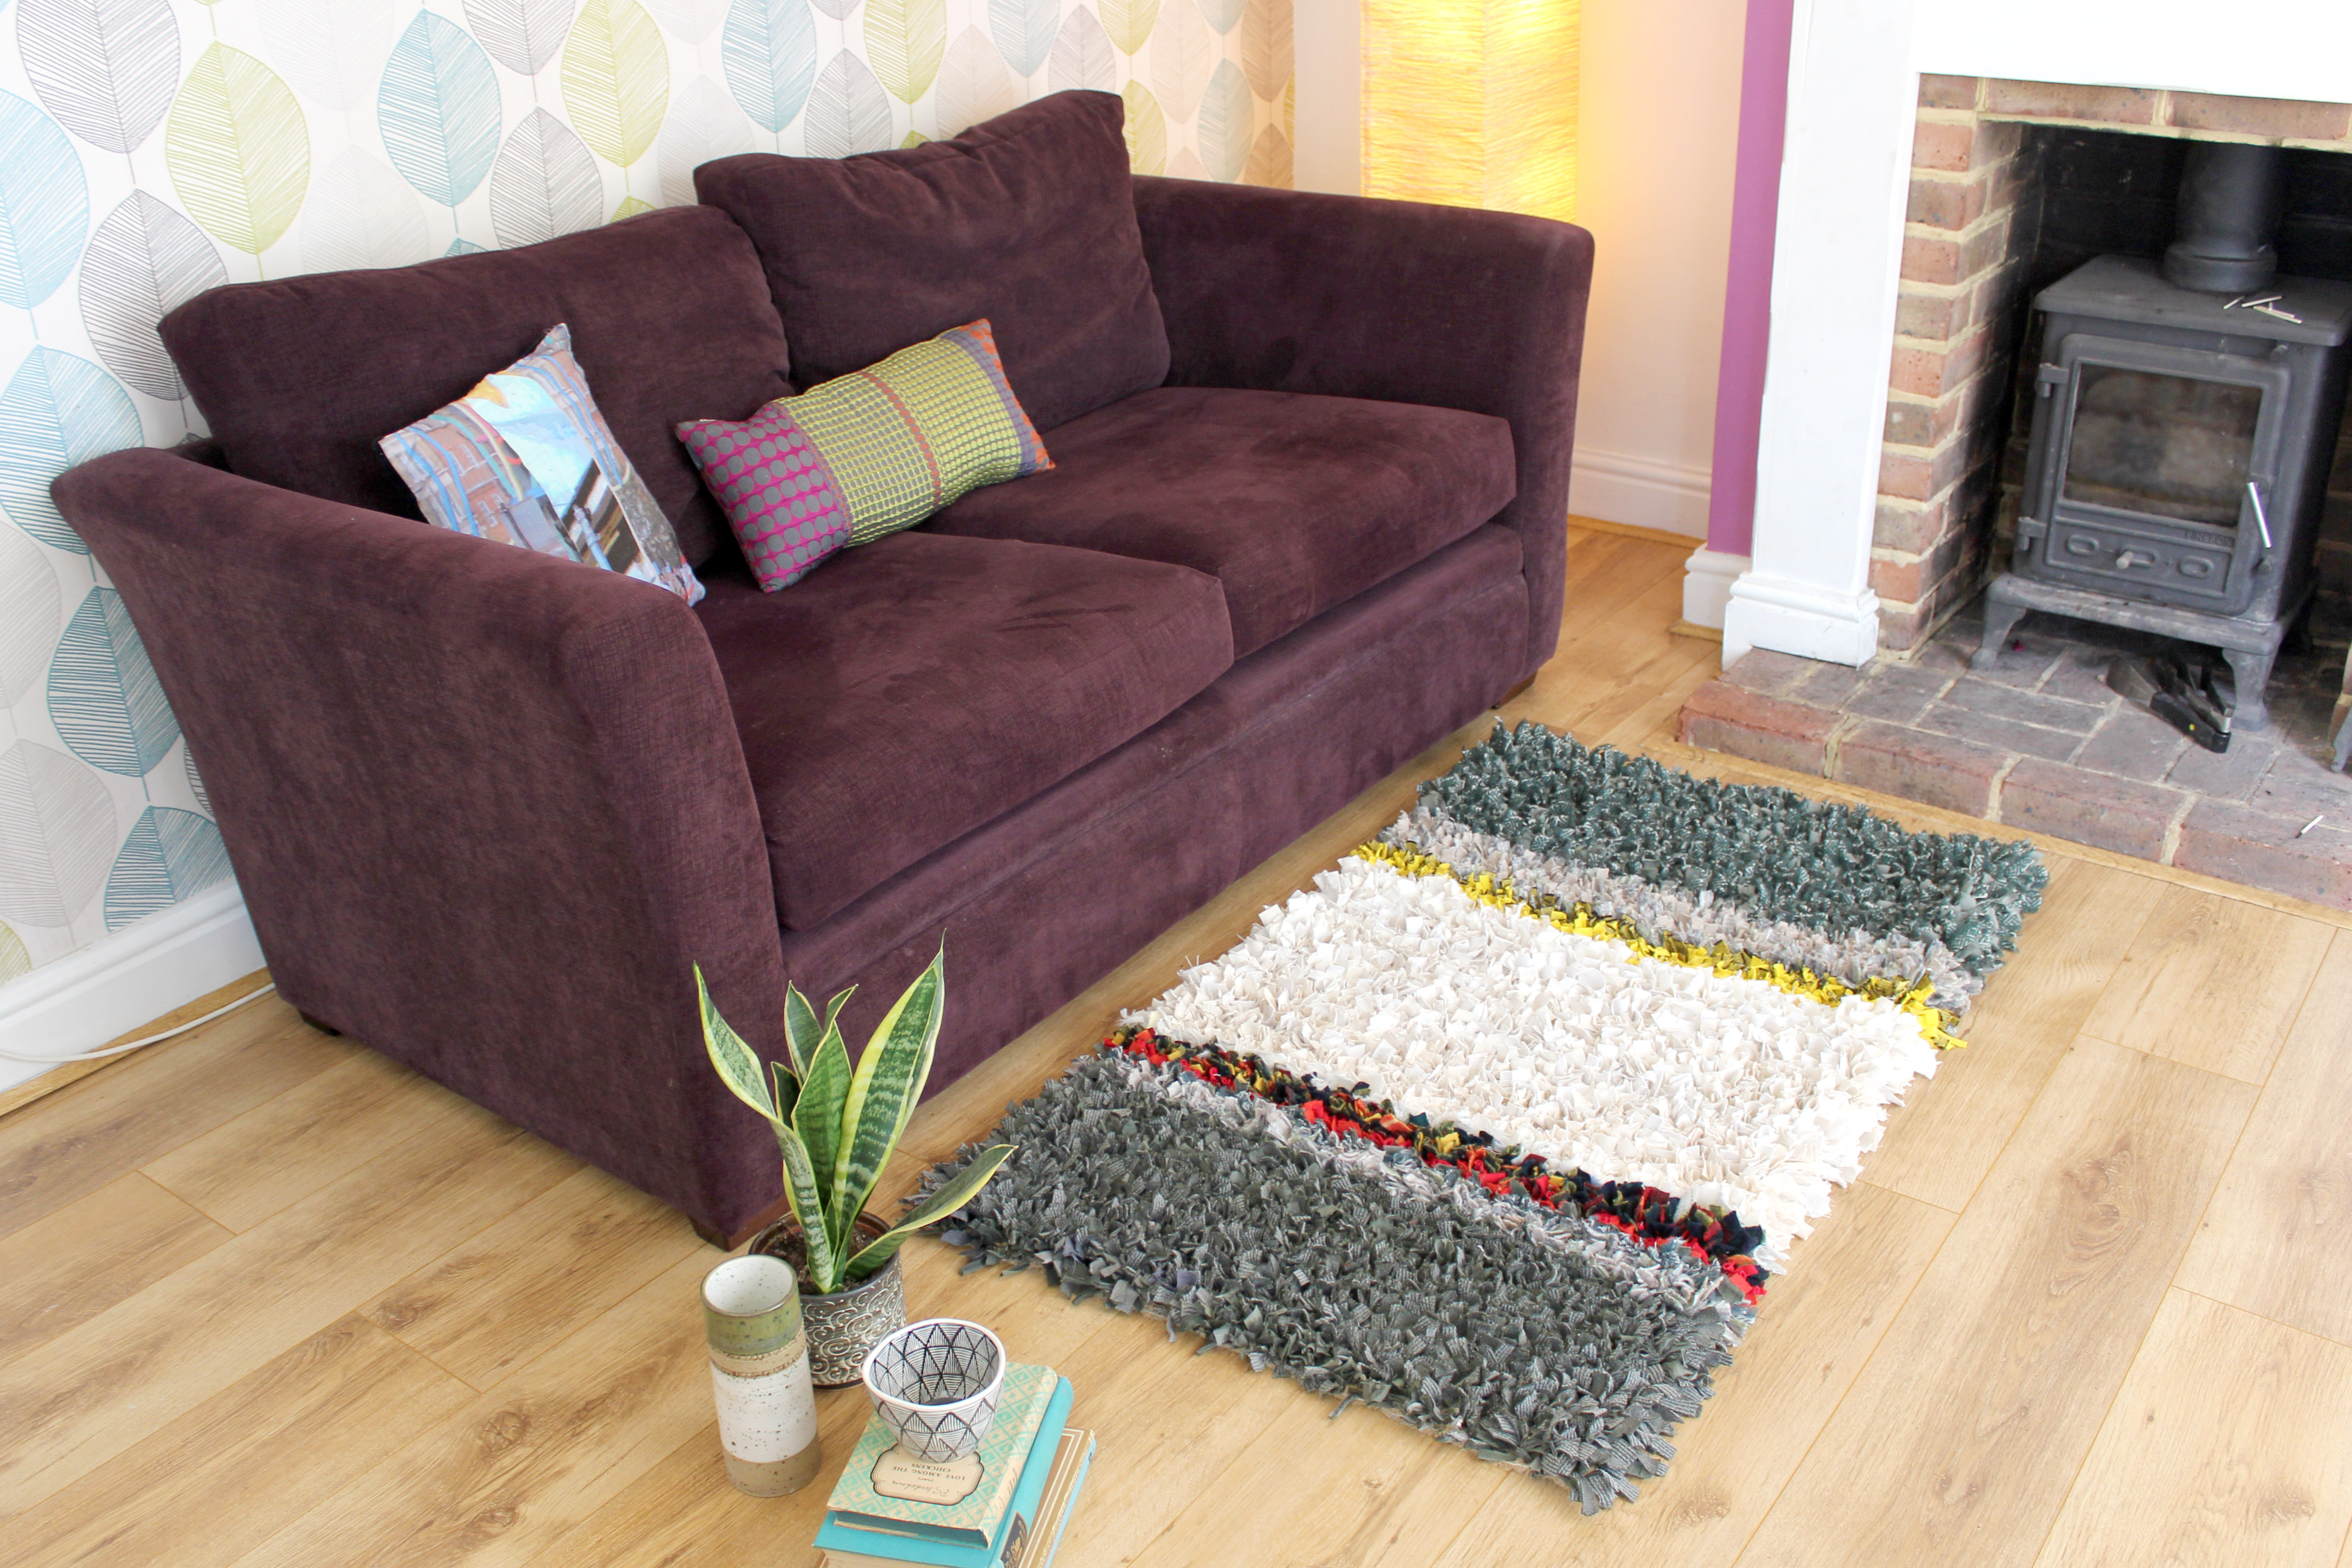 Cosy shaggy rag rug in front of sofa in living room made out of woollen material